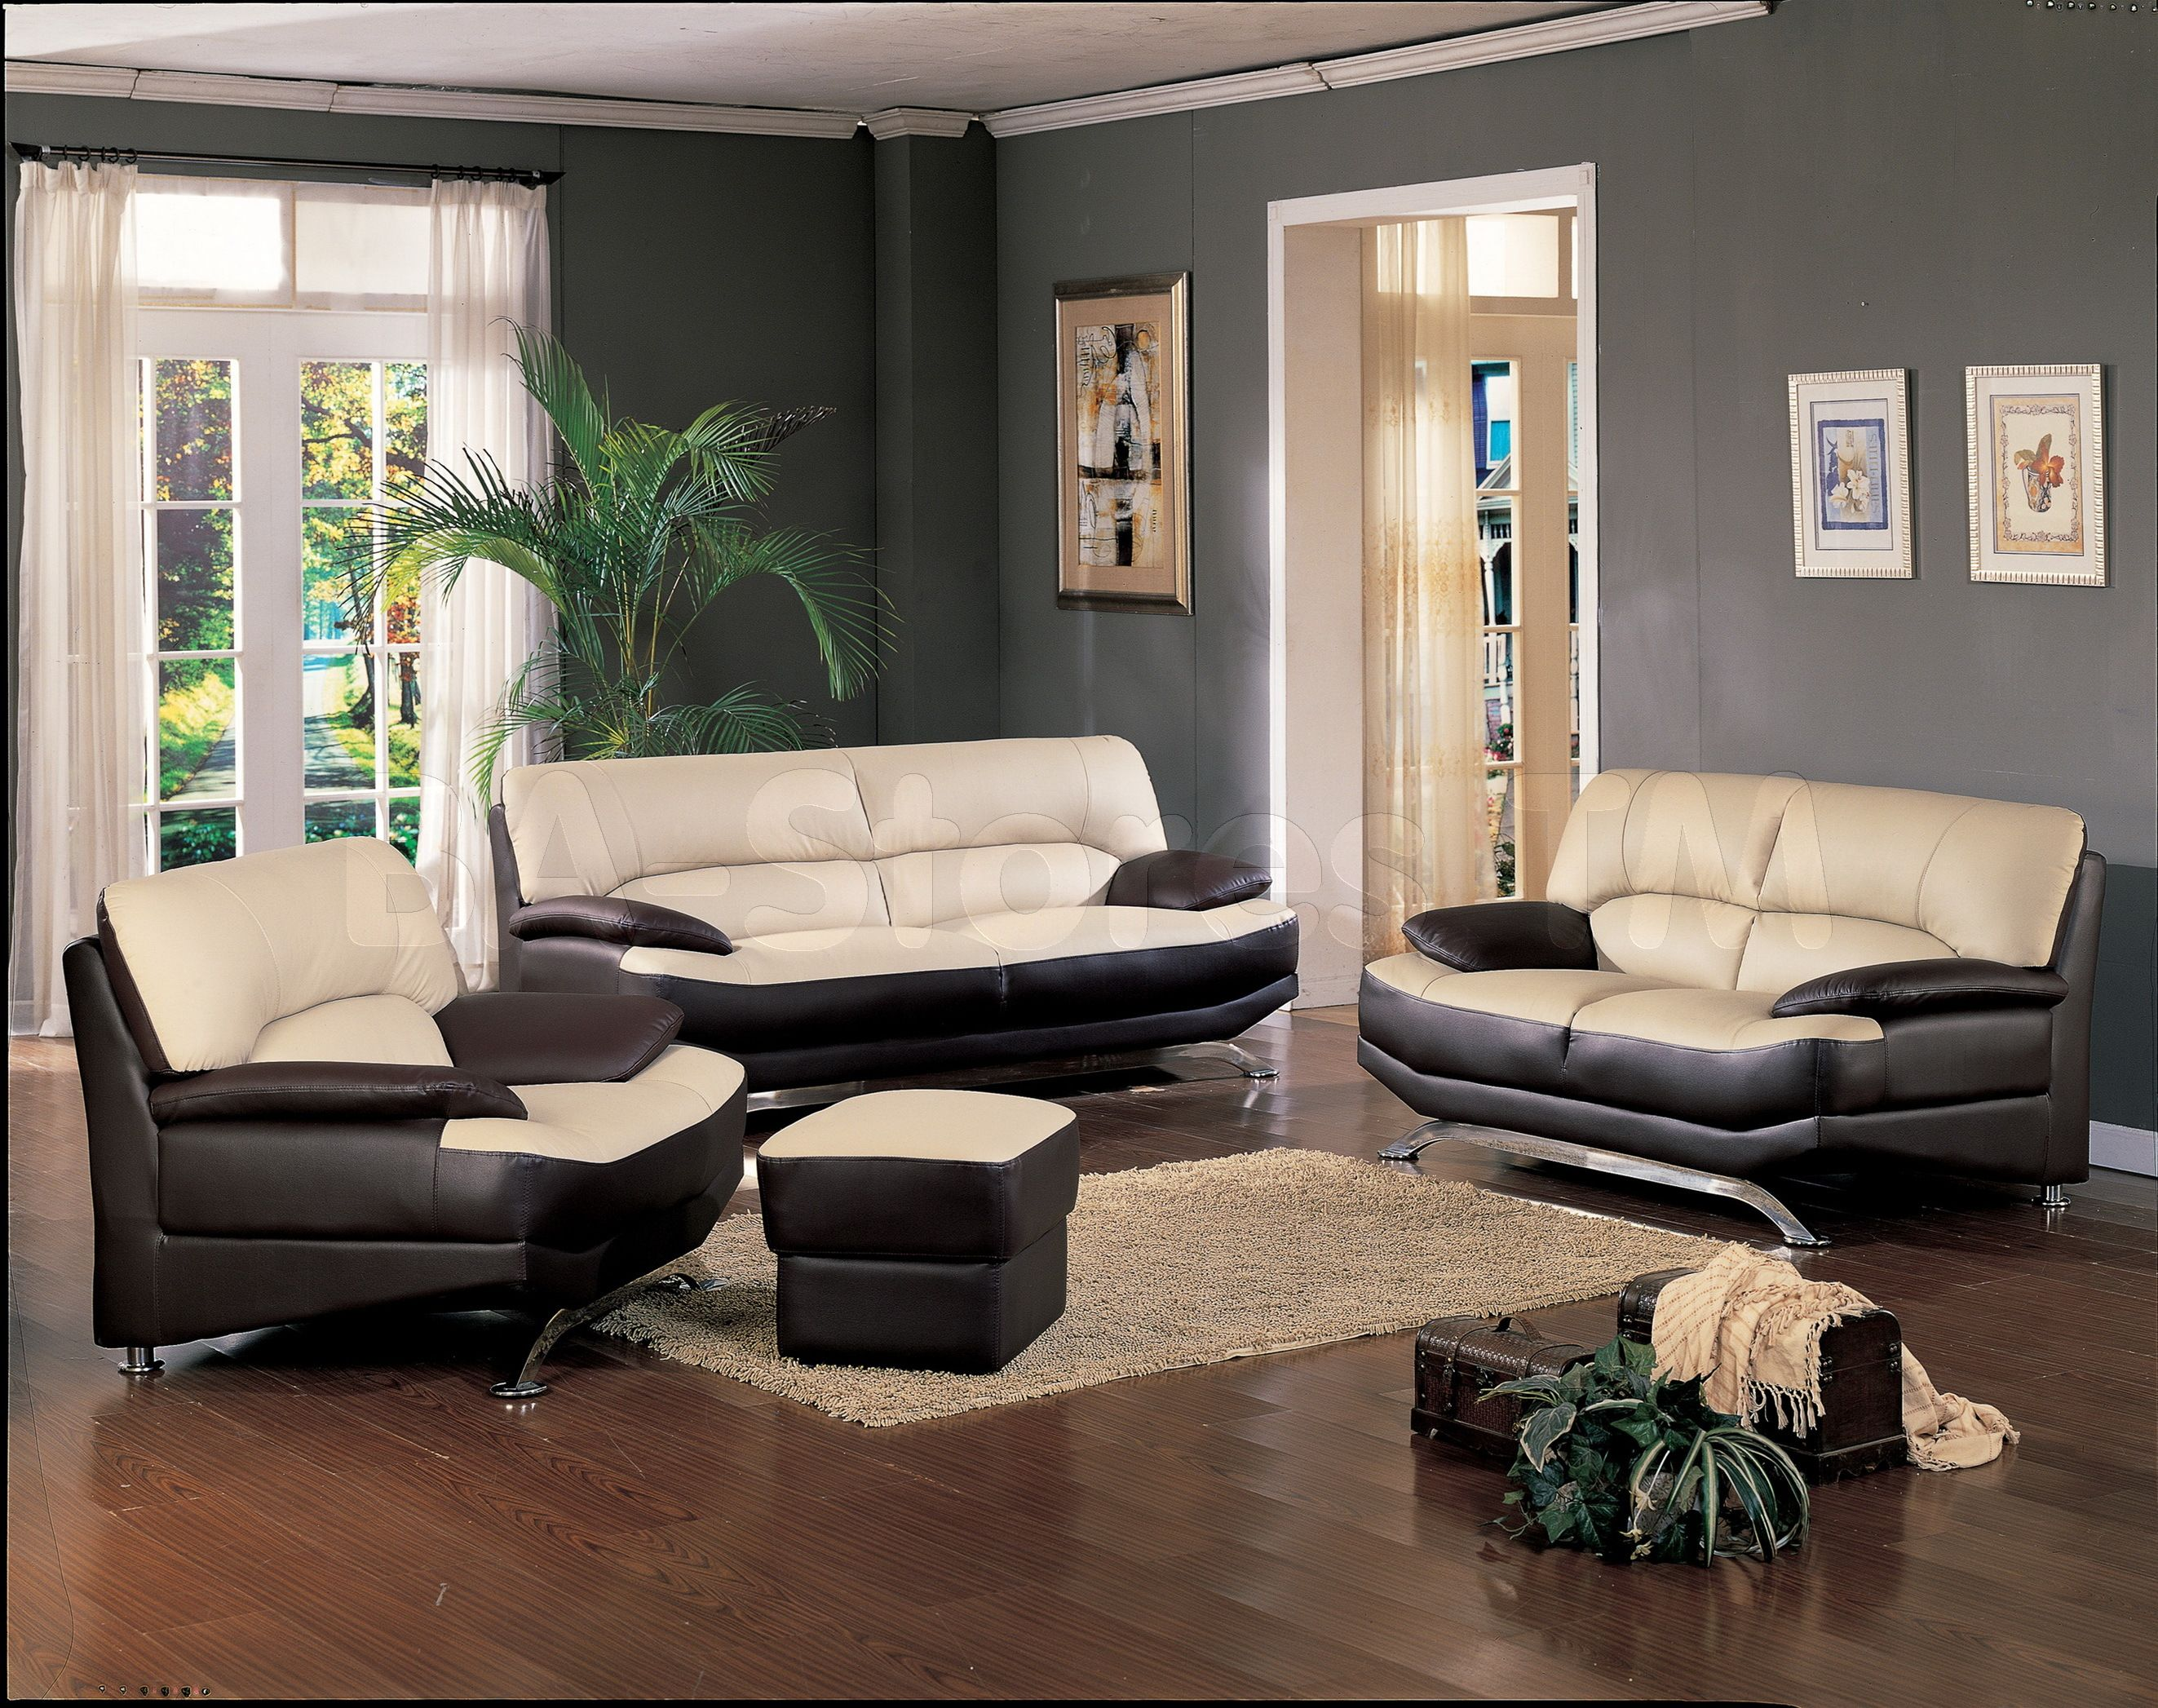 Grey Living Room With Brown Furniture black and cream leather couch on dark brown wooden floor completed